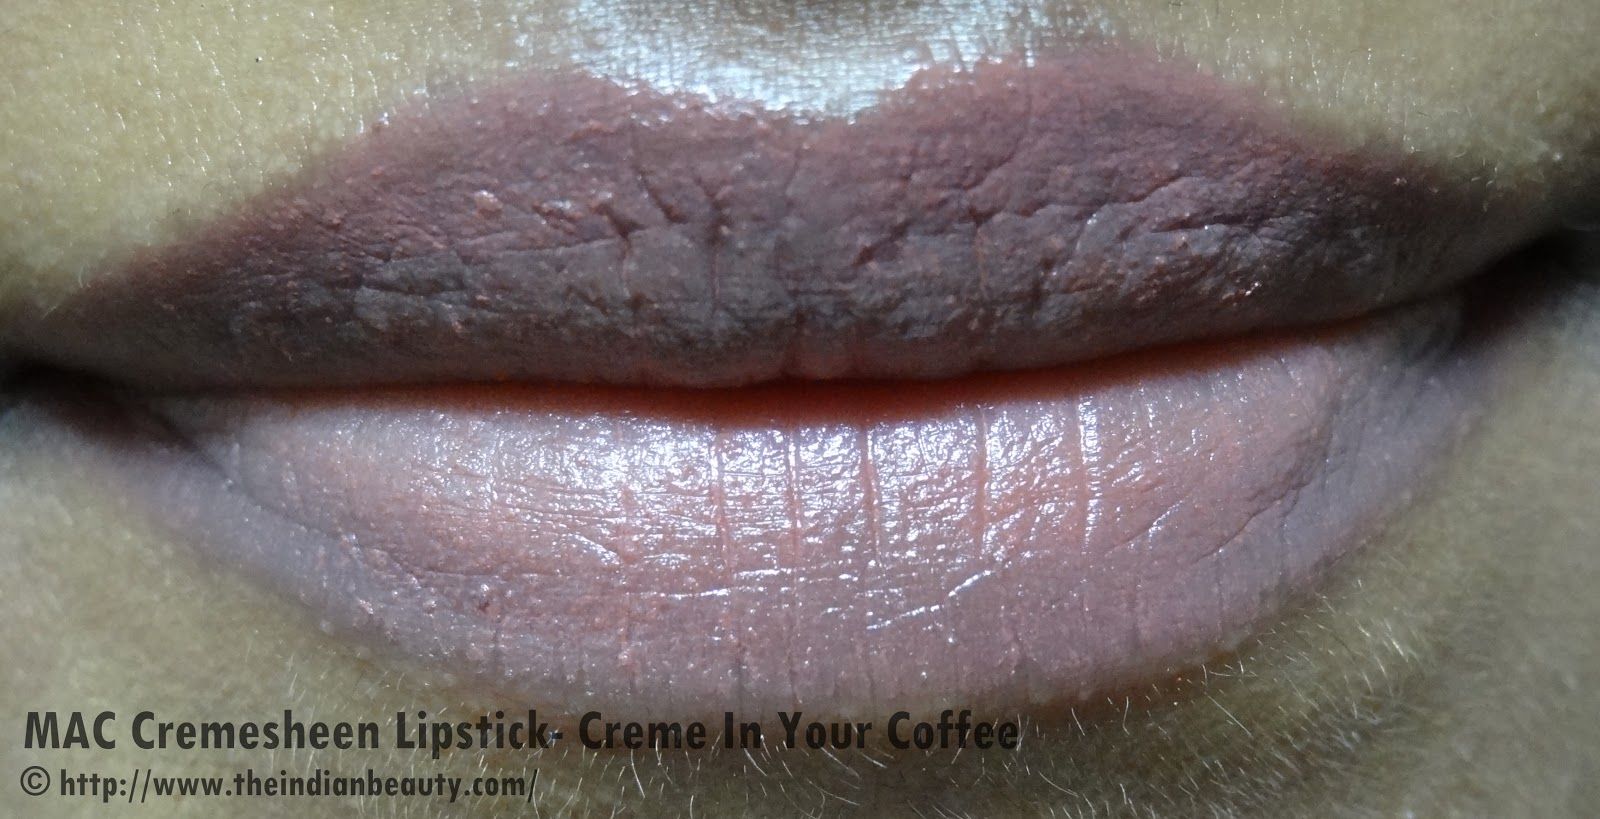 Mac Cremesheen Lipstick Creme In Your Coffee Review